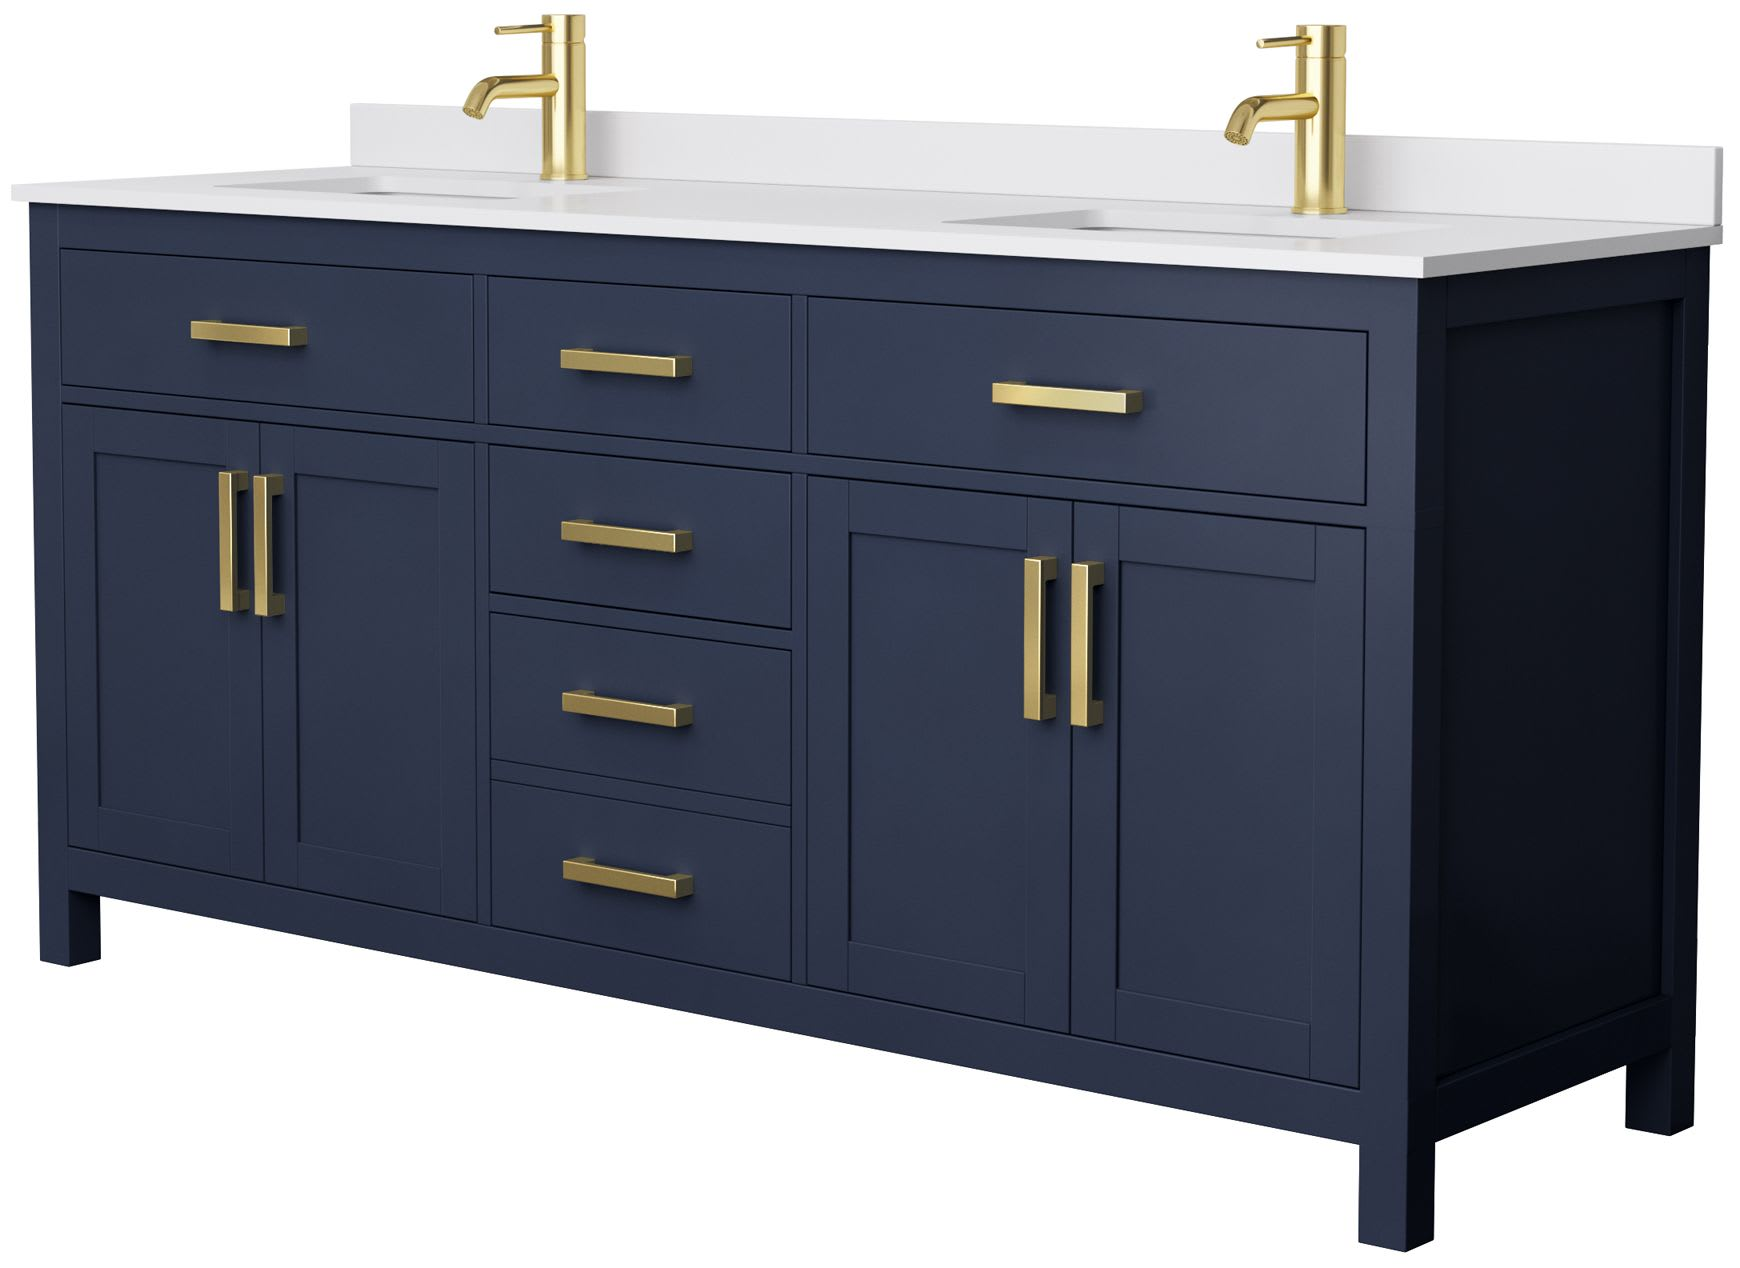 Wyndham Collection Wcg242472dblccunsmxx Dark Blue Carrara Top Beckett 72 Inch Double Bathroom Vanity With Cultured Marble Countertop Undermount Square Sinks No Mirrors Faucet Com